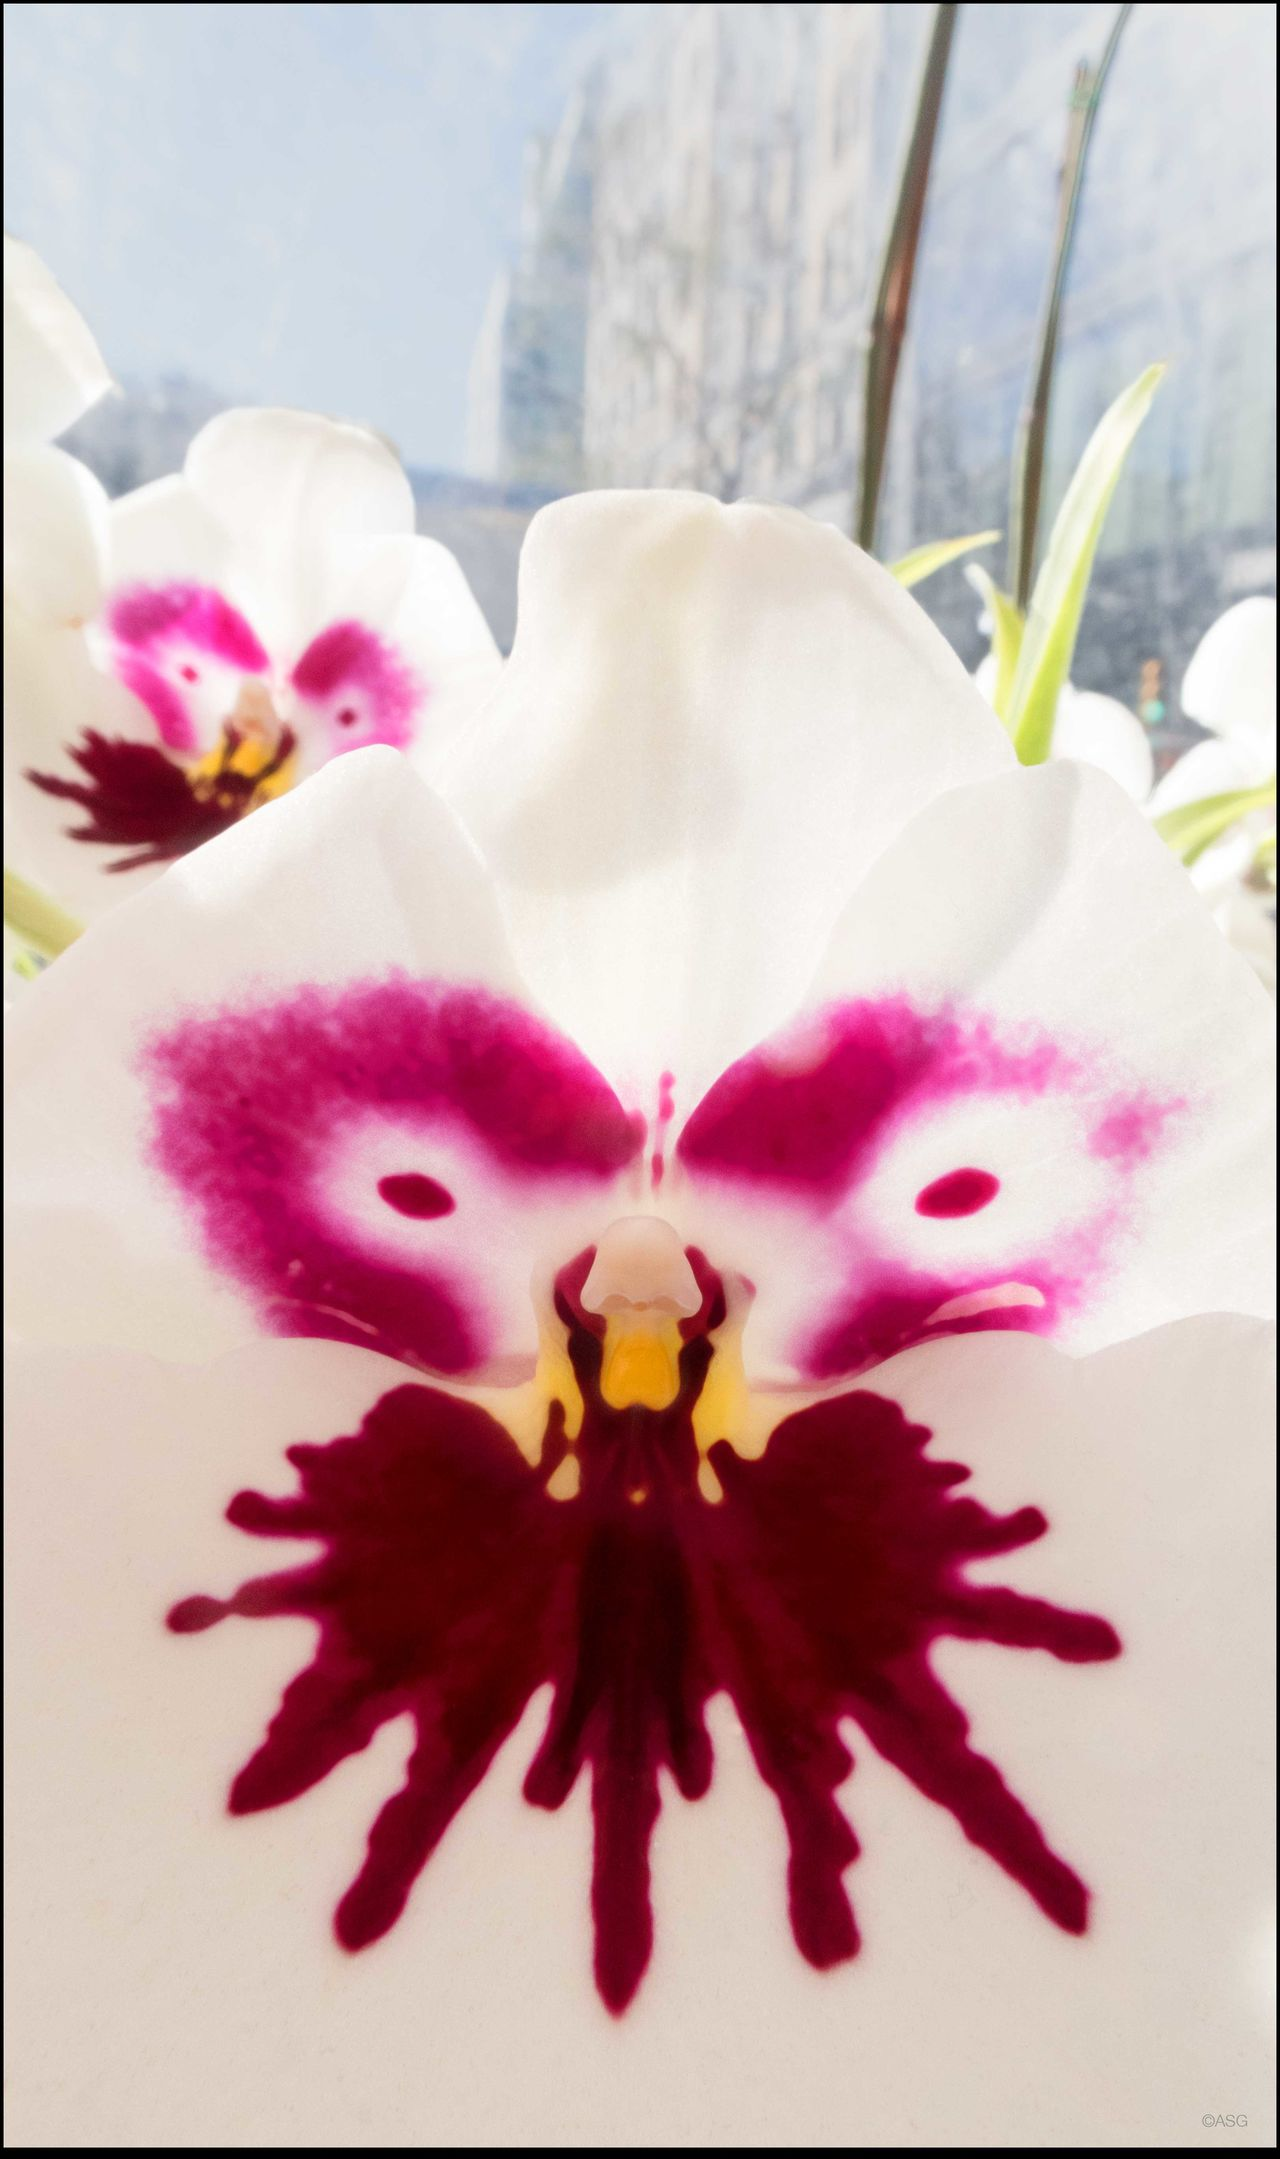 Face in the Crowd Abstract Close-up Elégance Focus On Foreground Fragility Miltonia Orchid Petal Selective Focus Shot 11/14/15 Softness Union Sq. Mkt.